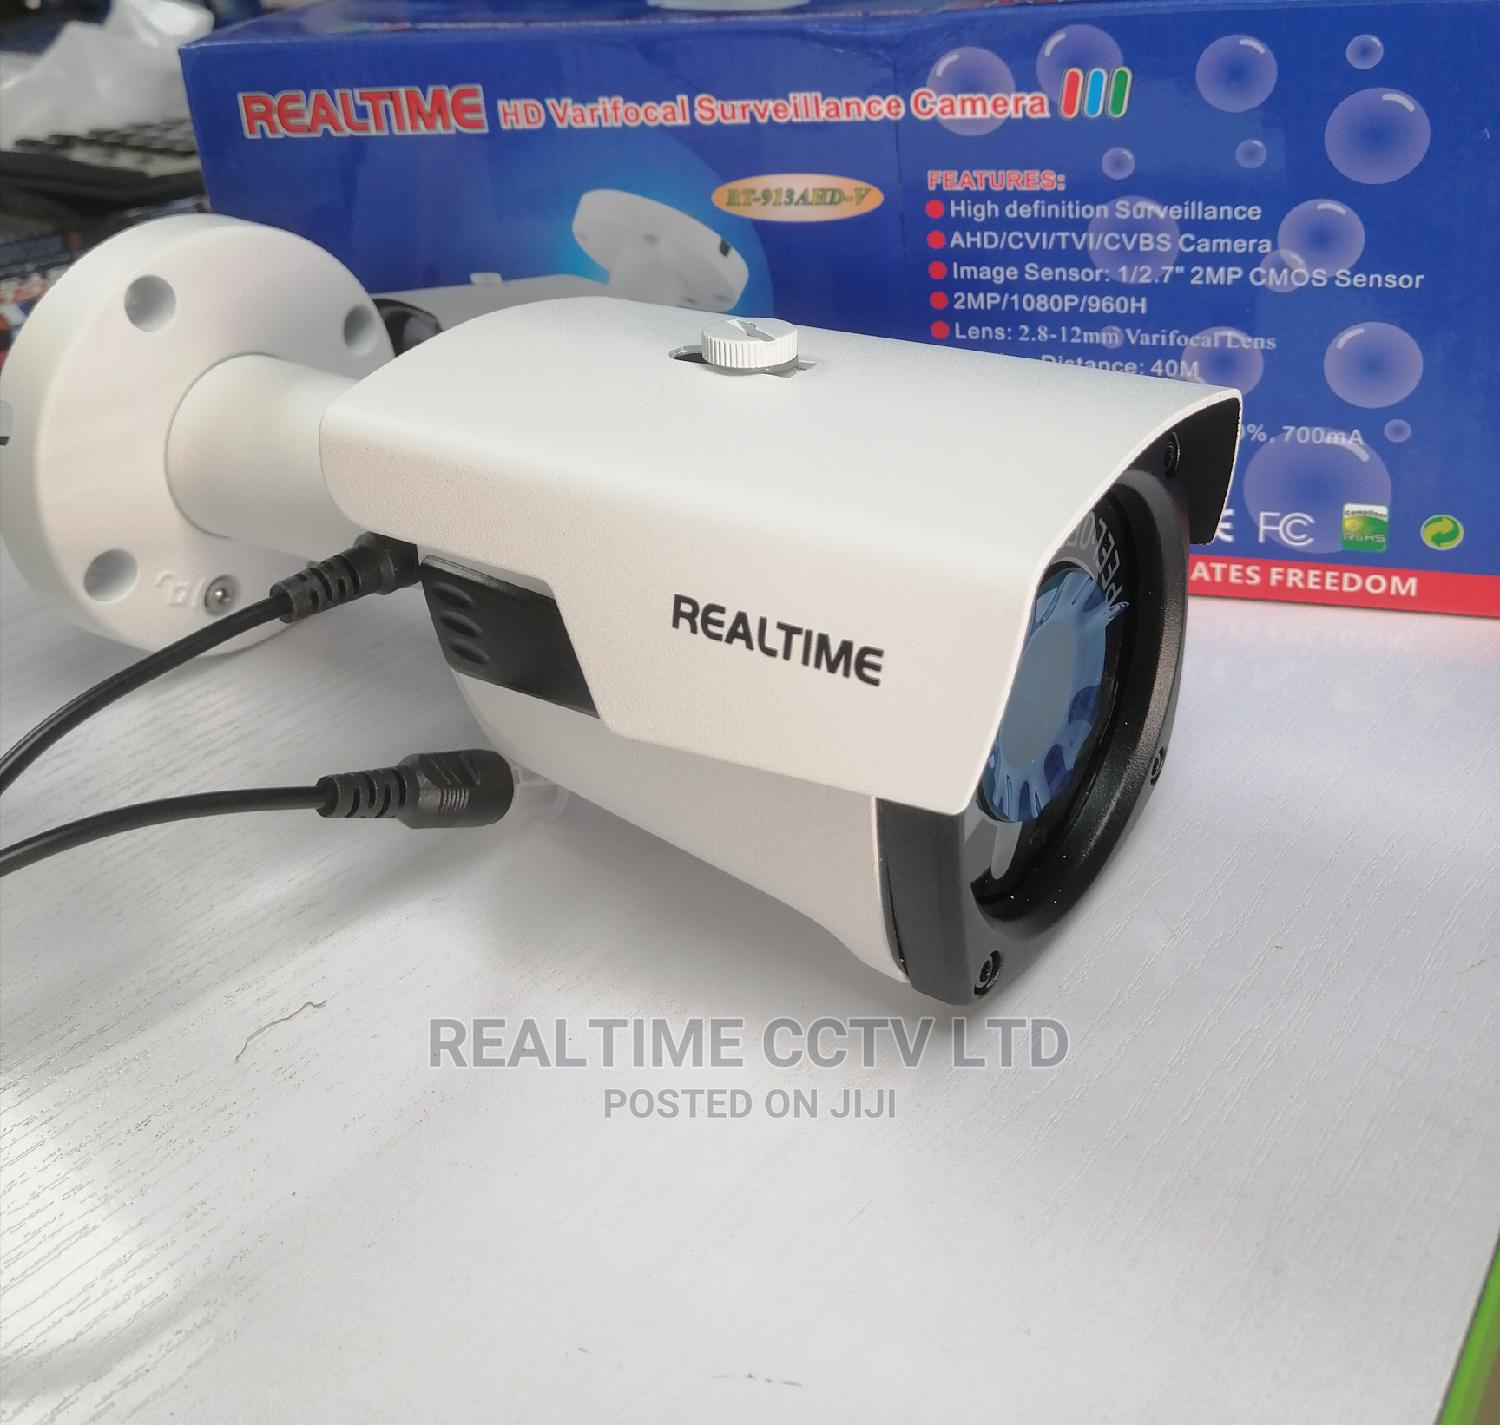 Archive: Realtime Wired Veri Focal Camera